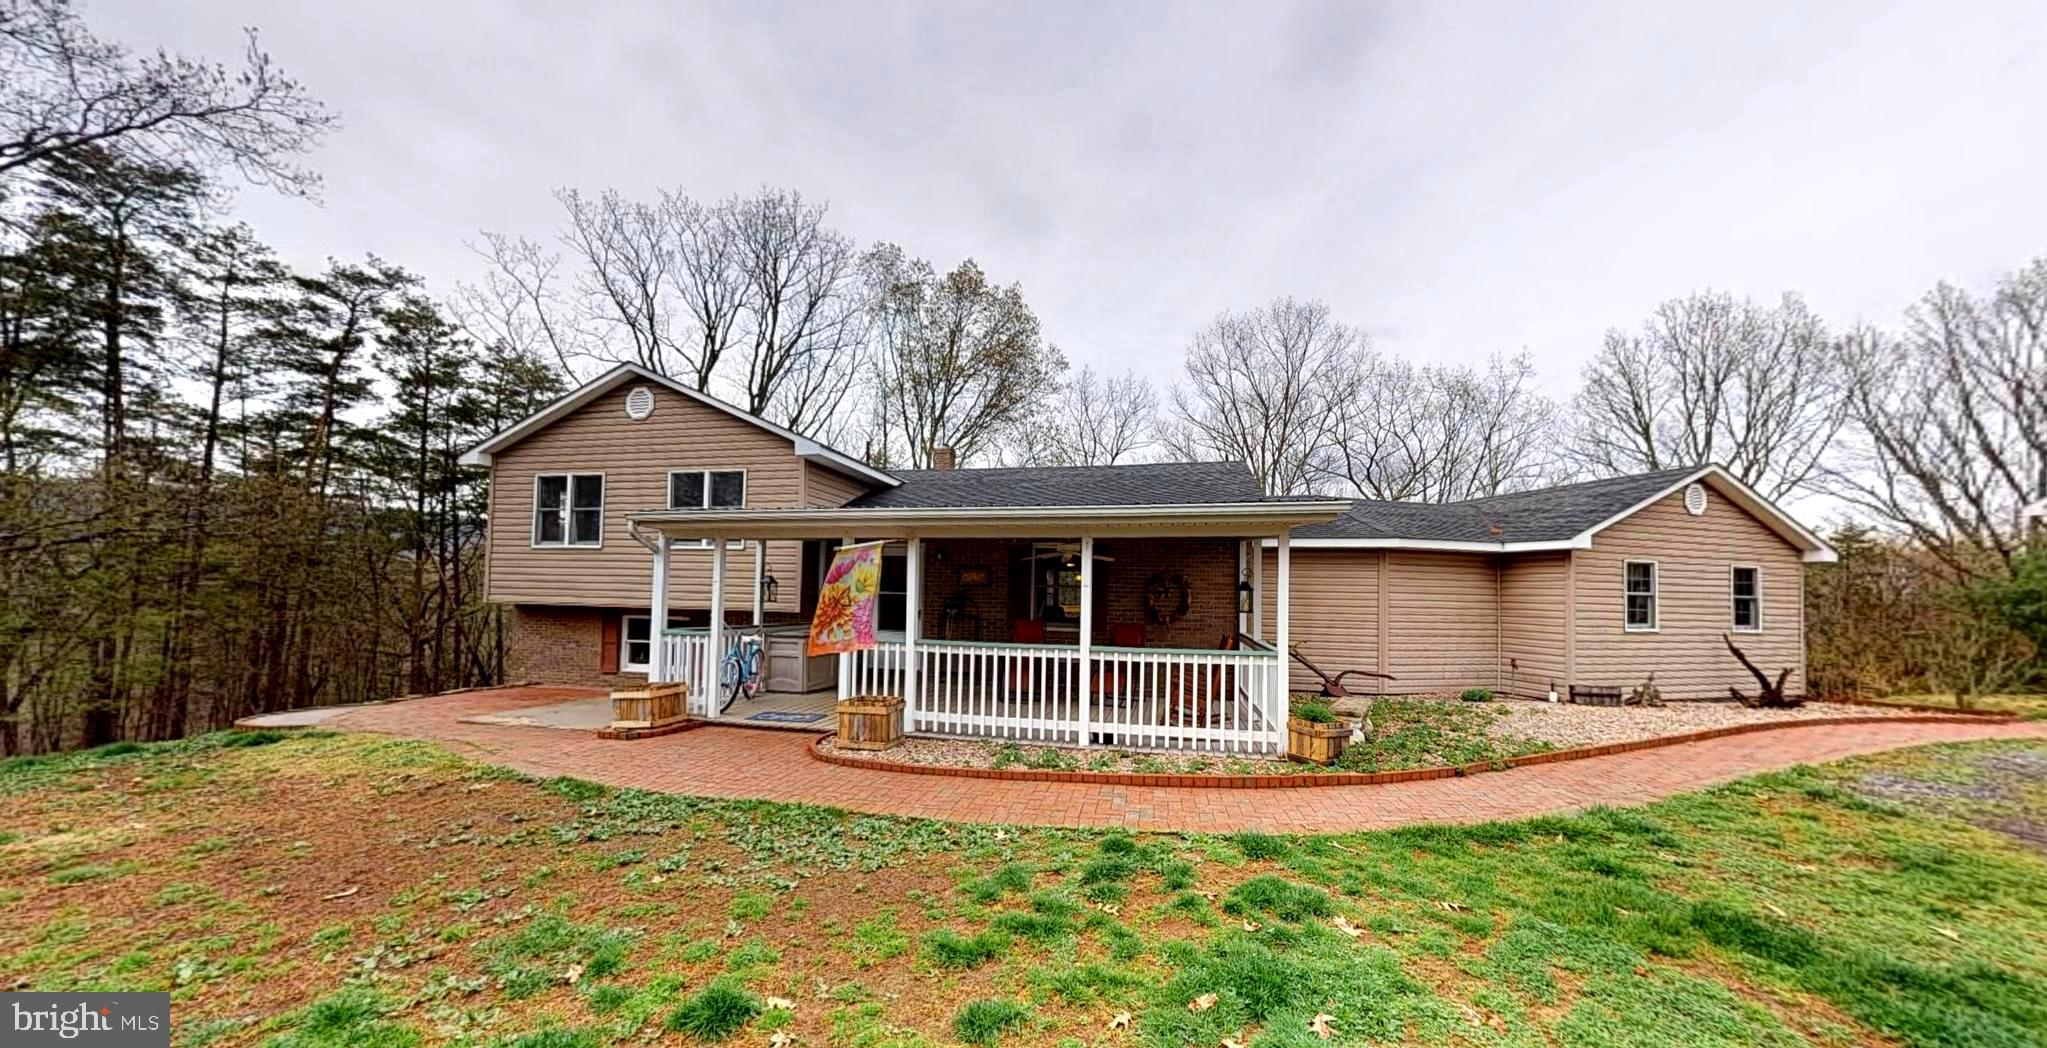 145 DUSTY APPLE LANE, MAYSVILLE, WV 26833